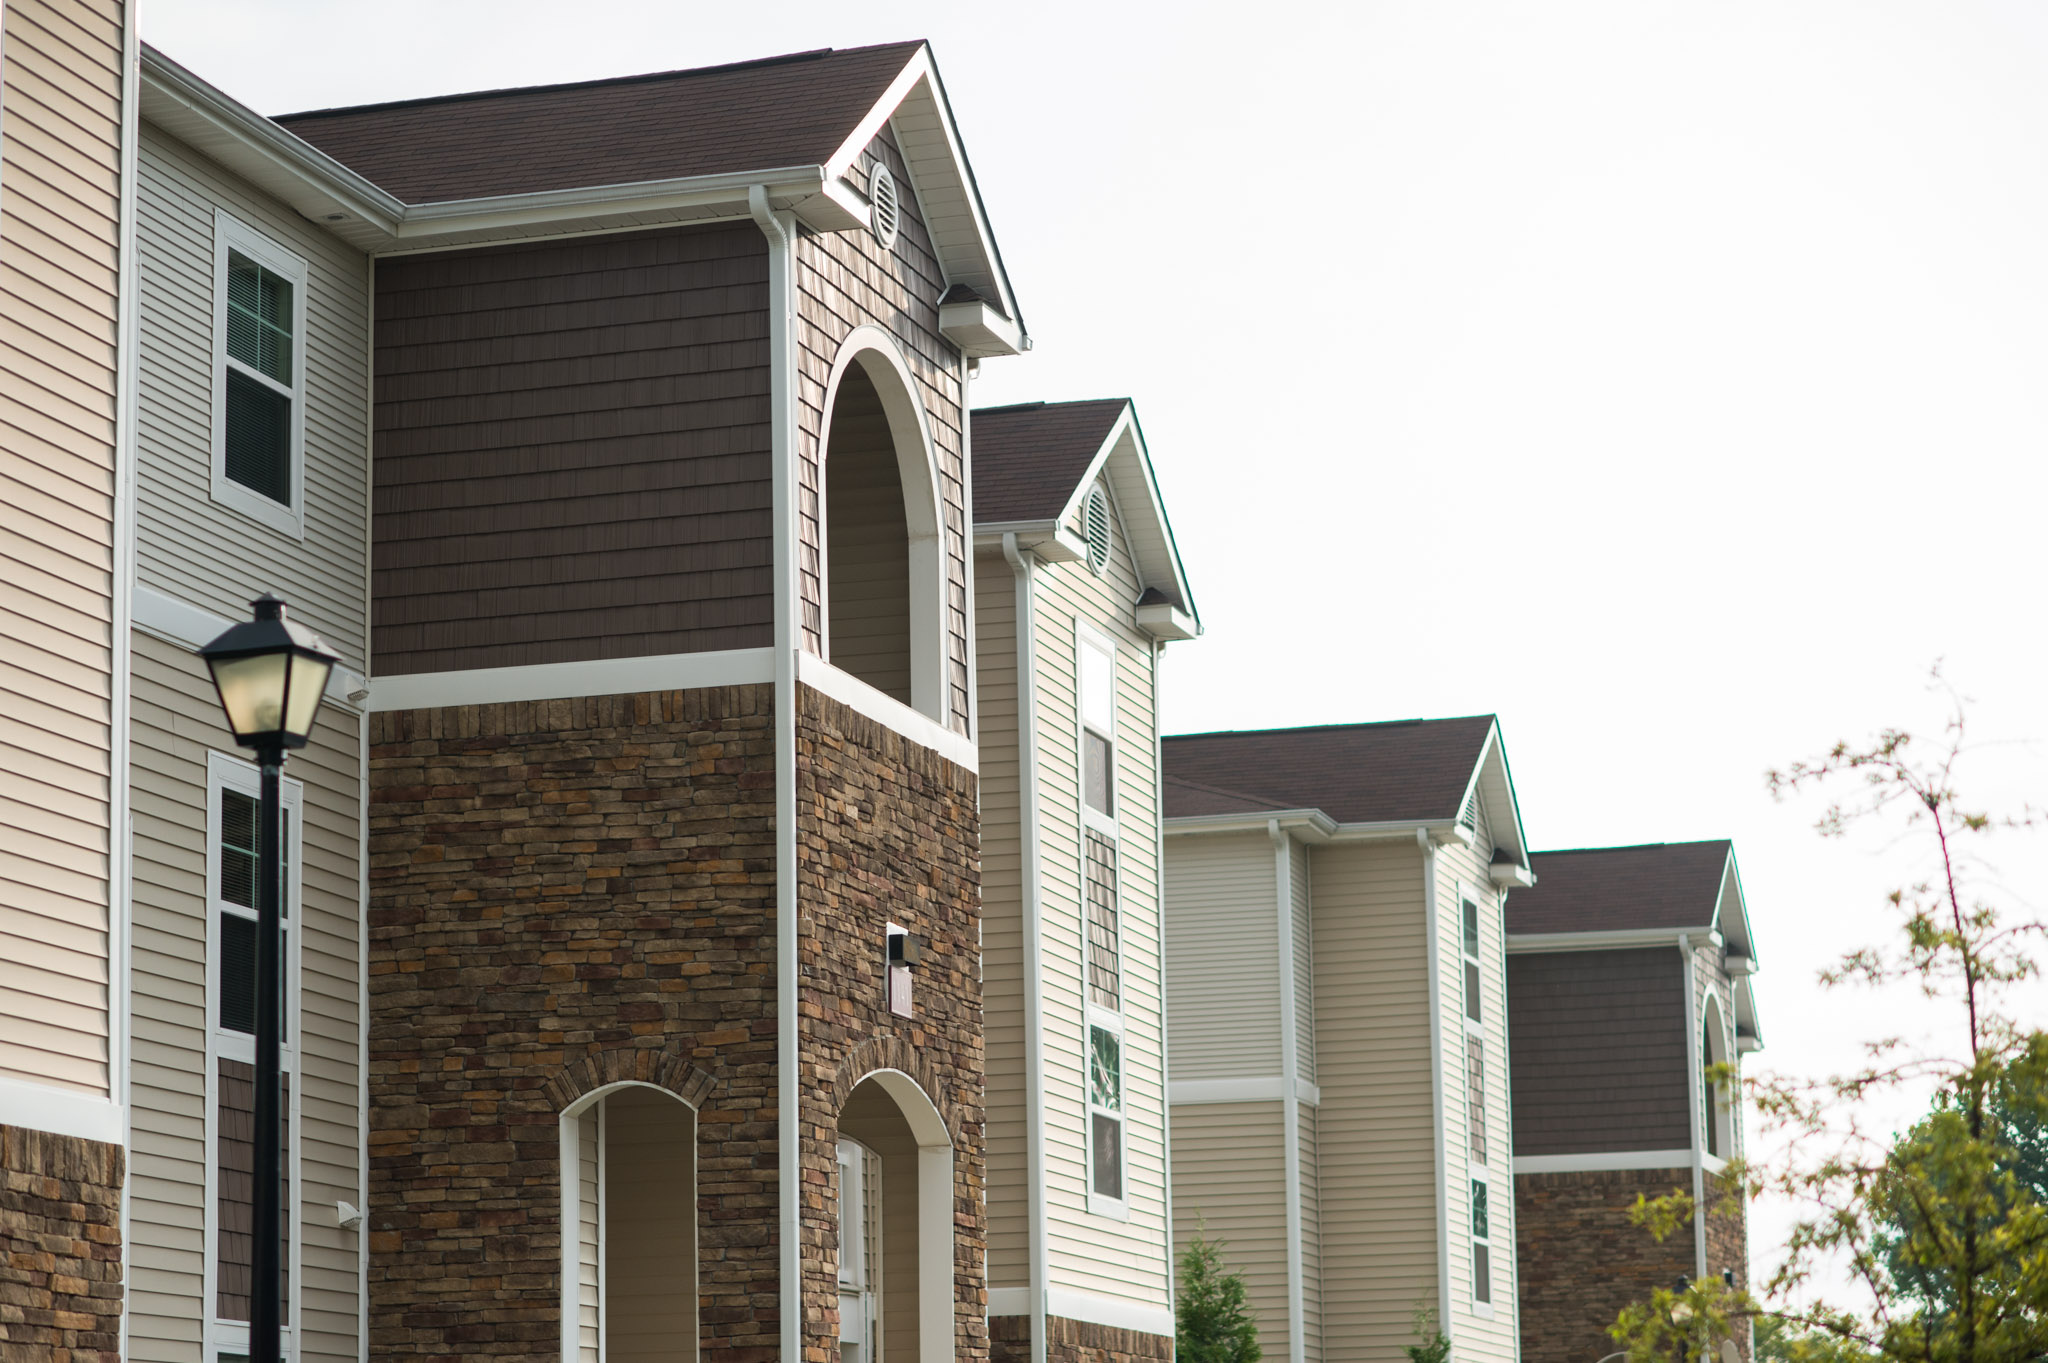 North 38 Exteriors for Web-1061.jpg